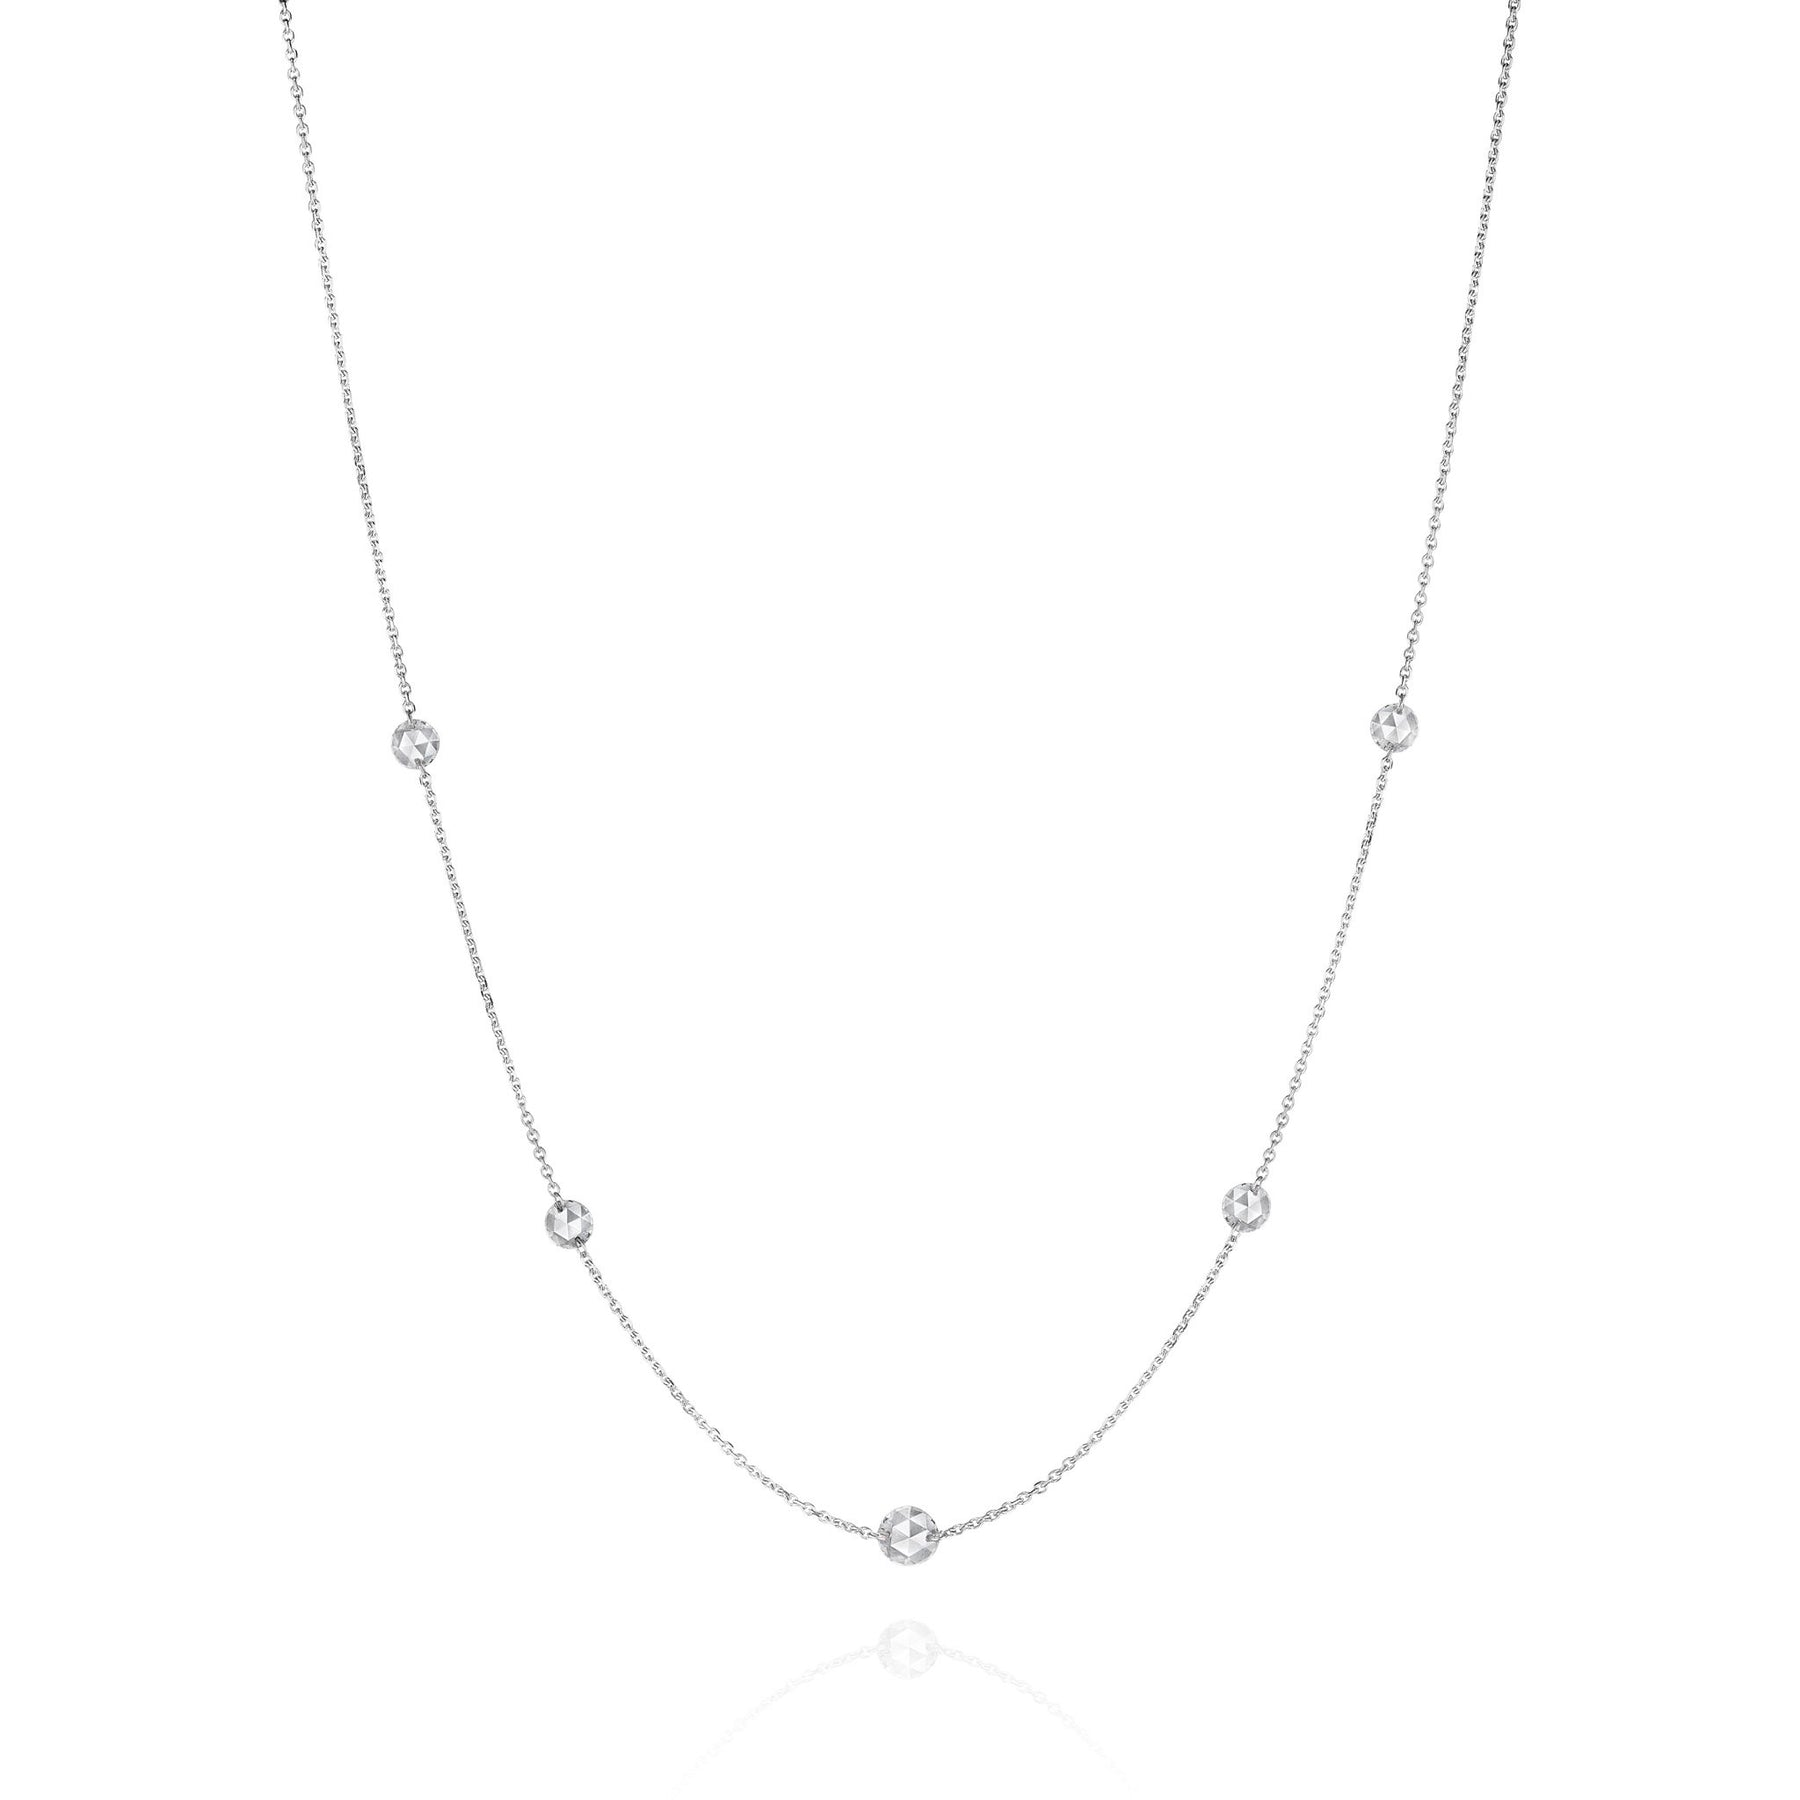 Mimi-Rosette-Couture-Rose-Cut-Diamond-Necklace_18k White Gold